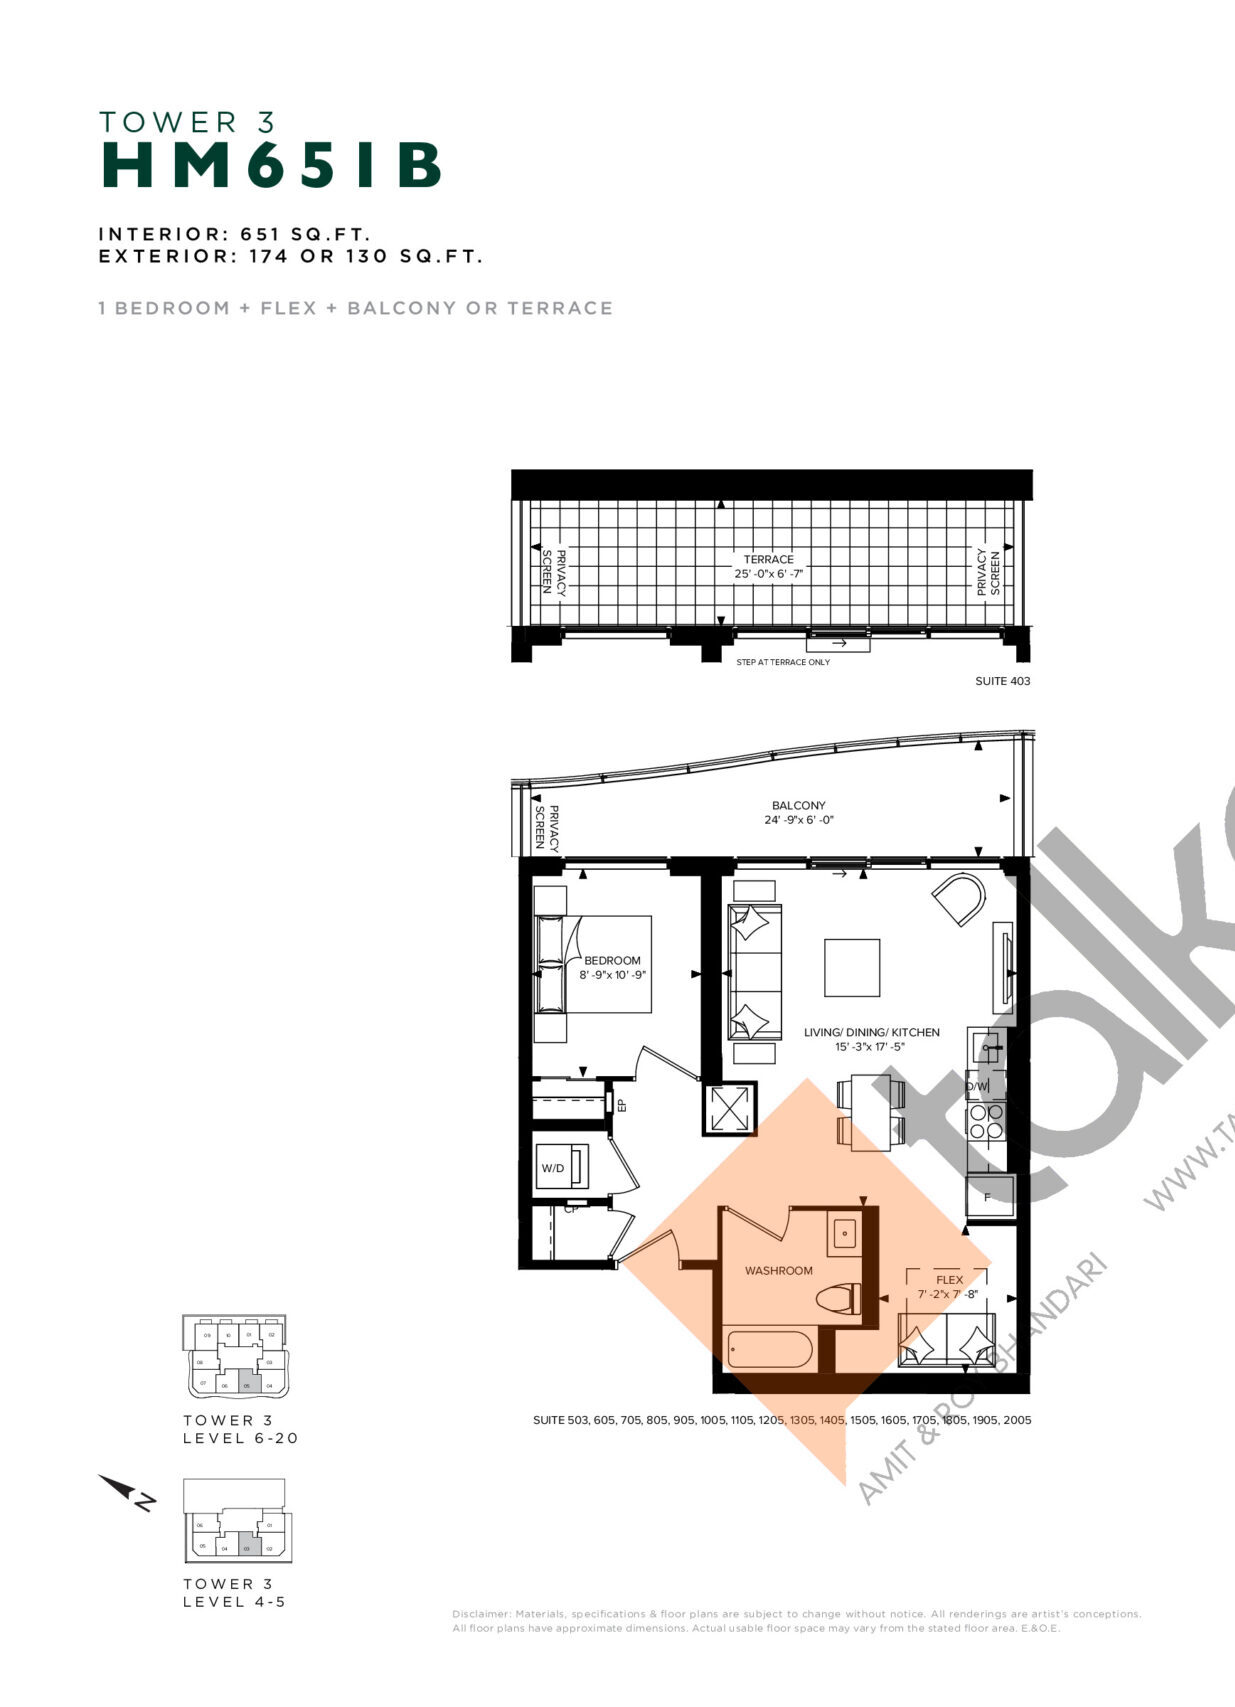 HM 651B (Tower 3) Floor Plan at Hillmont at SXSW Condos - 651 sq.ft